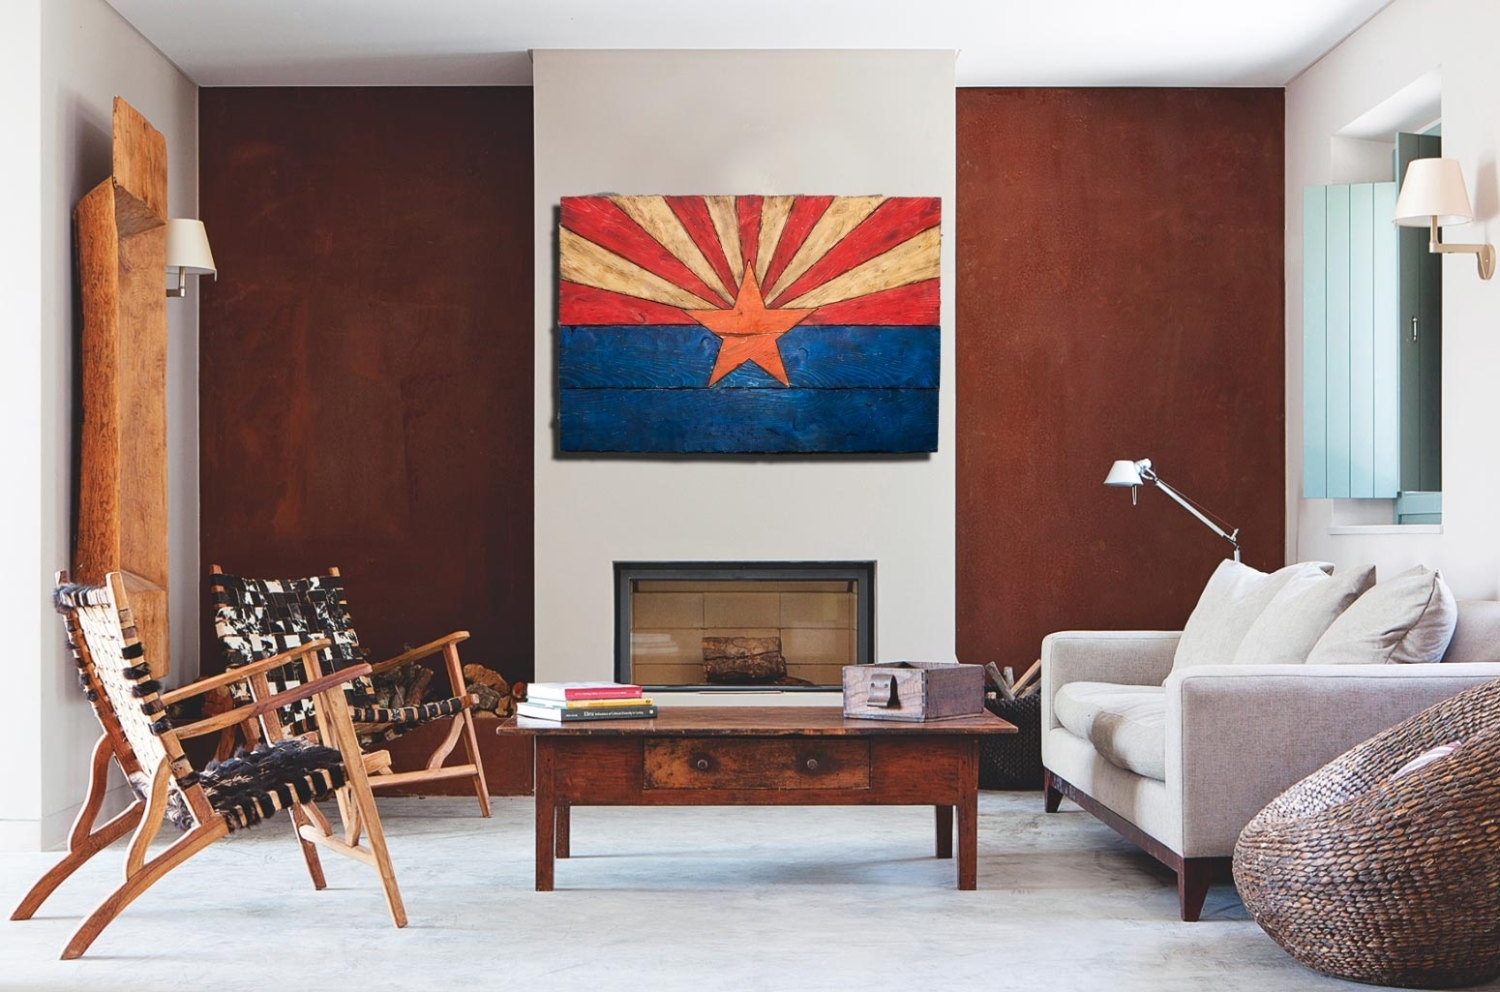 Arizona Flag, Handmade, Distressed Painted Wood, Vintage, Art inside Arizona Wall Art (Image 2 of 20)